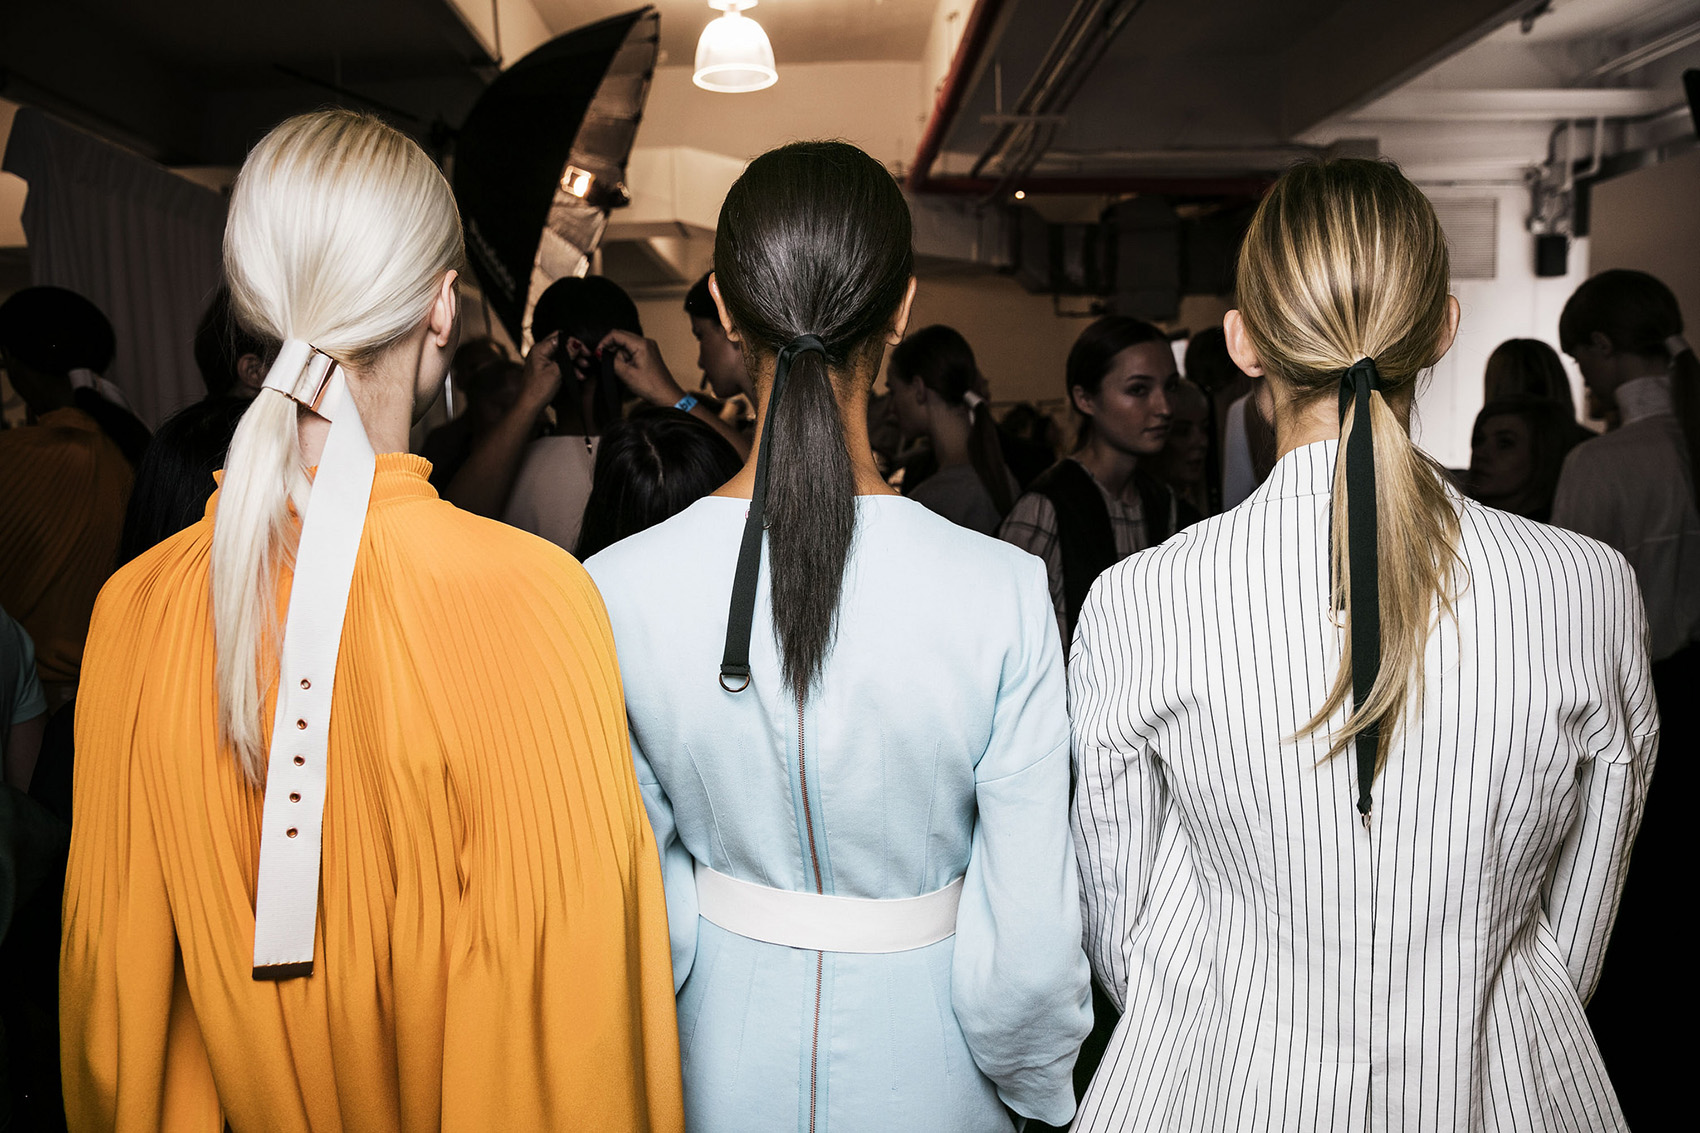 Your Go-to Style: Basic Ponytail